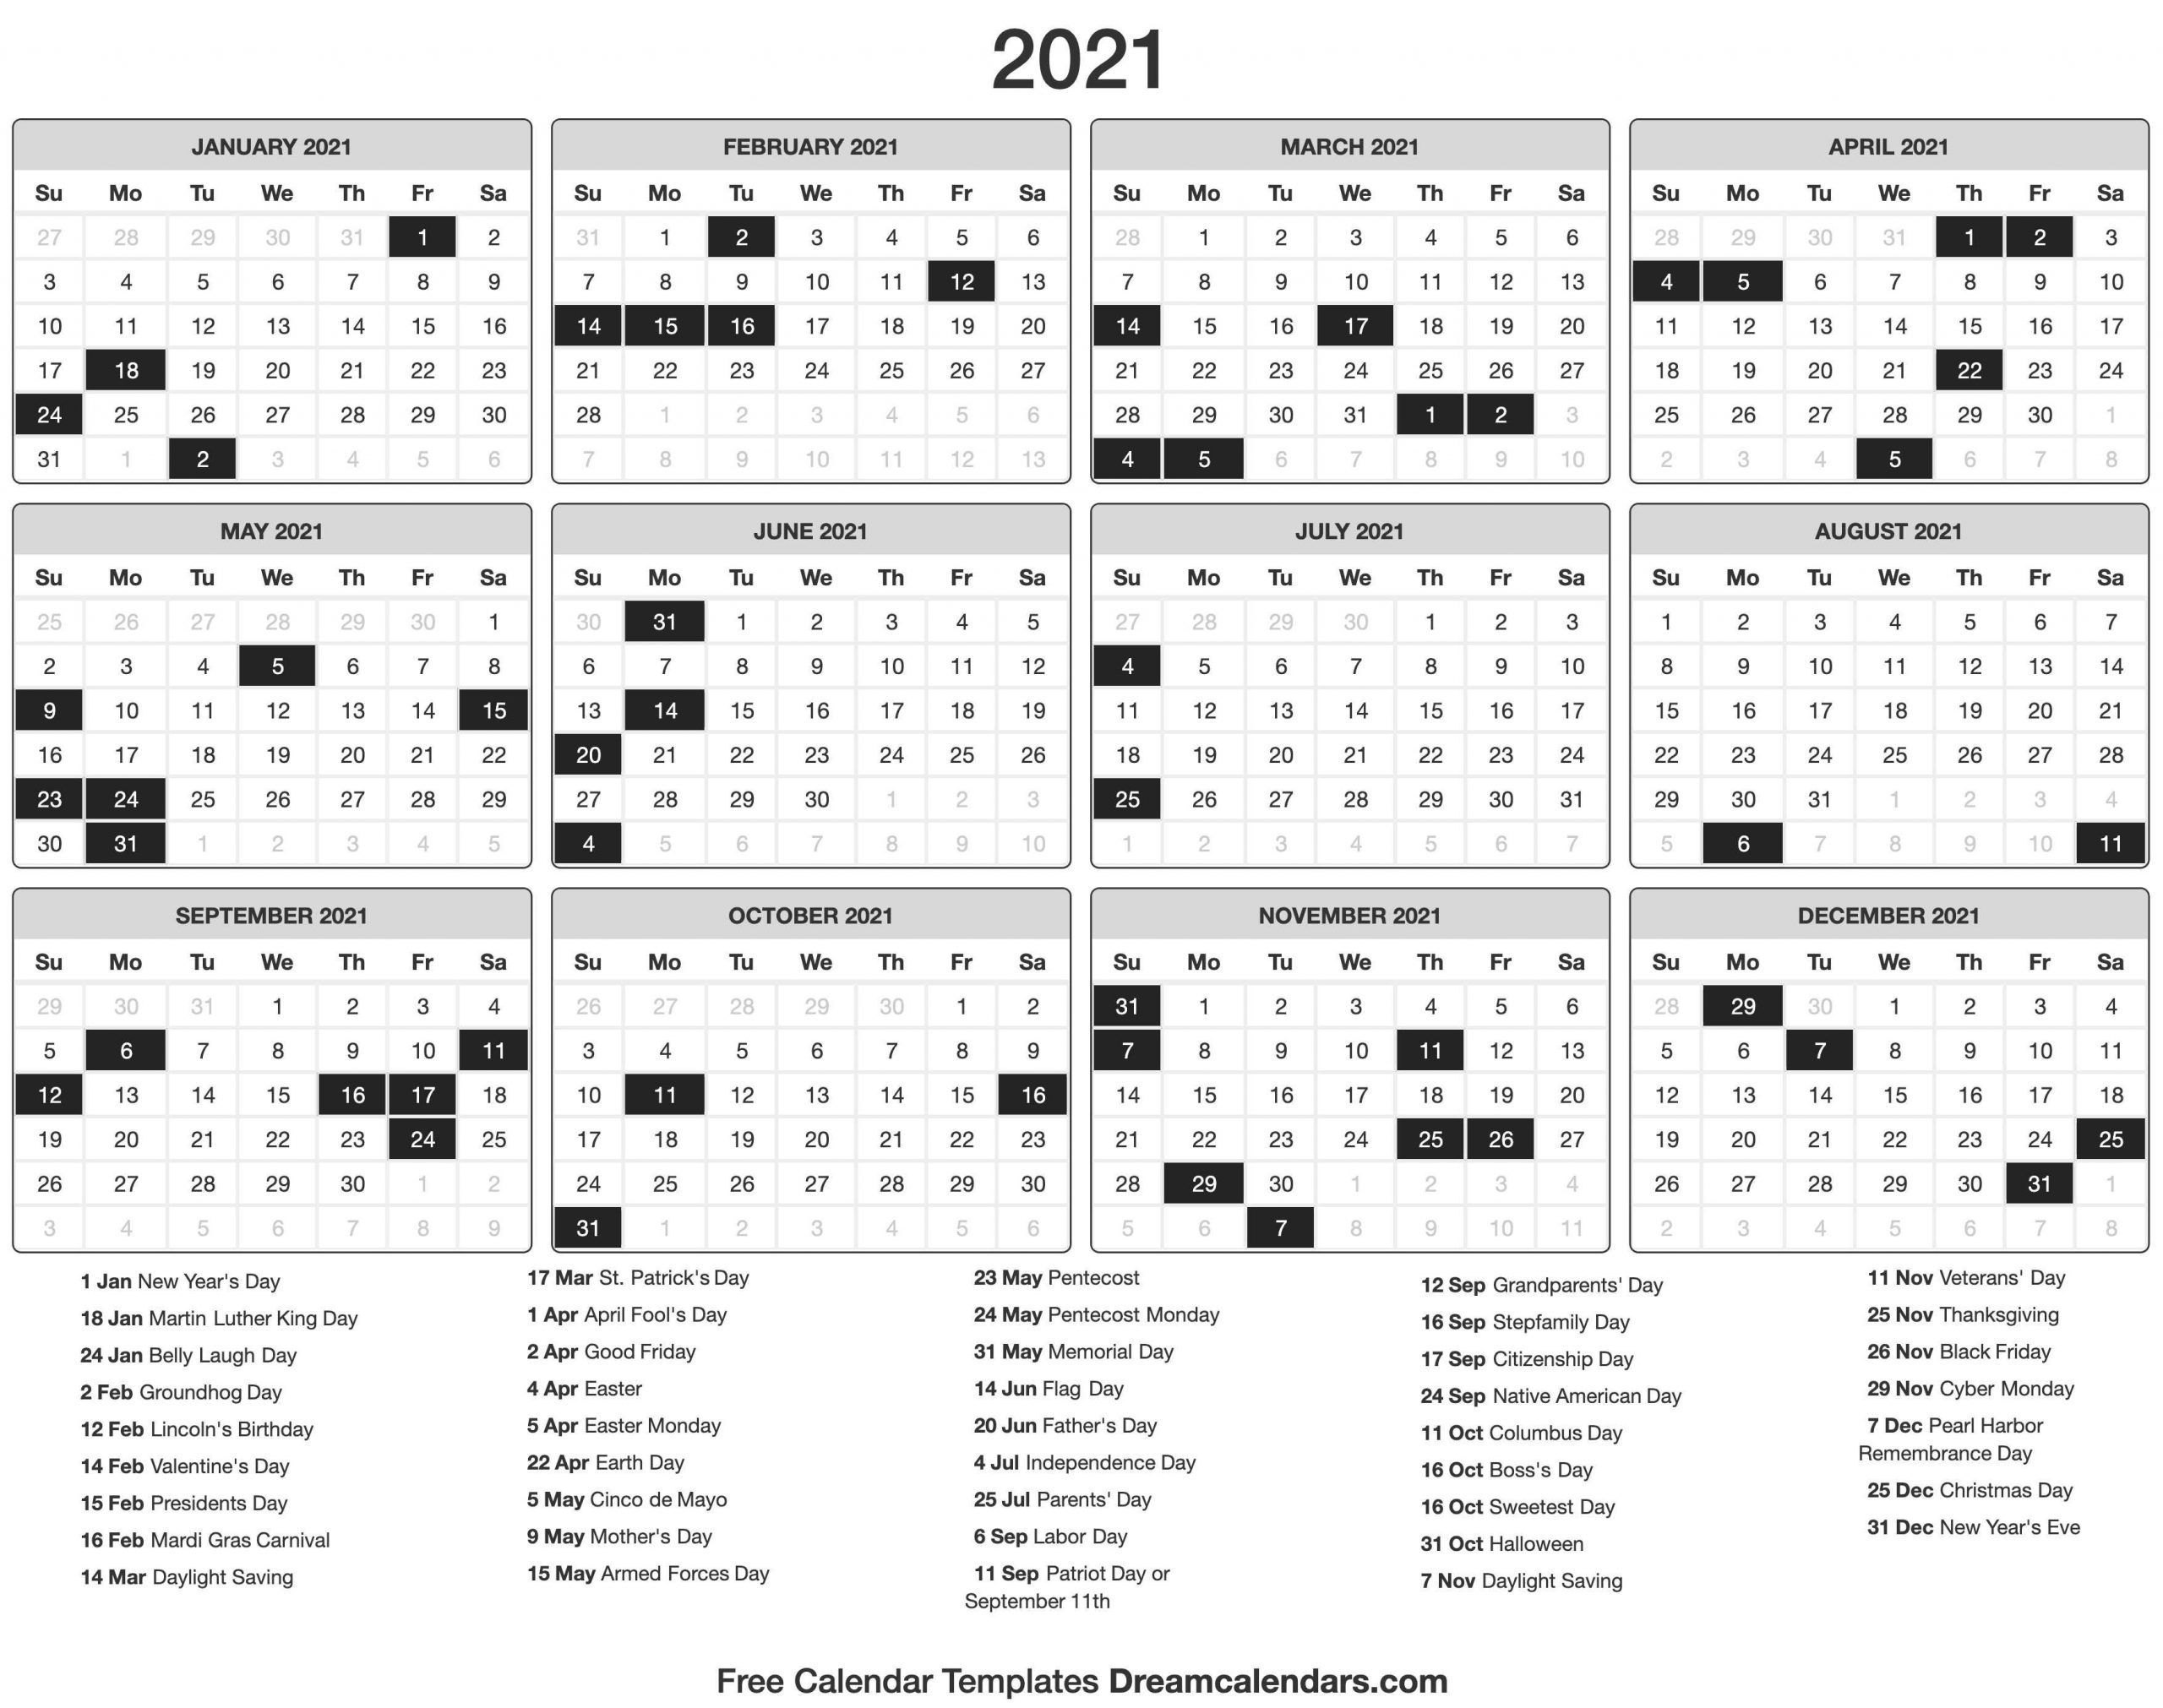 2021 Calendar intended for 2021 Calendar With Date Boxes Photo